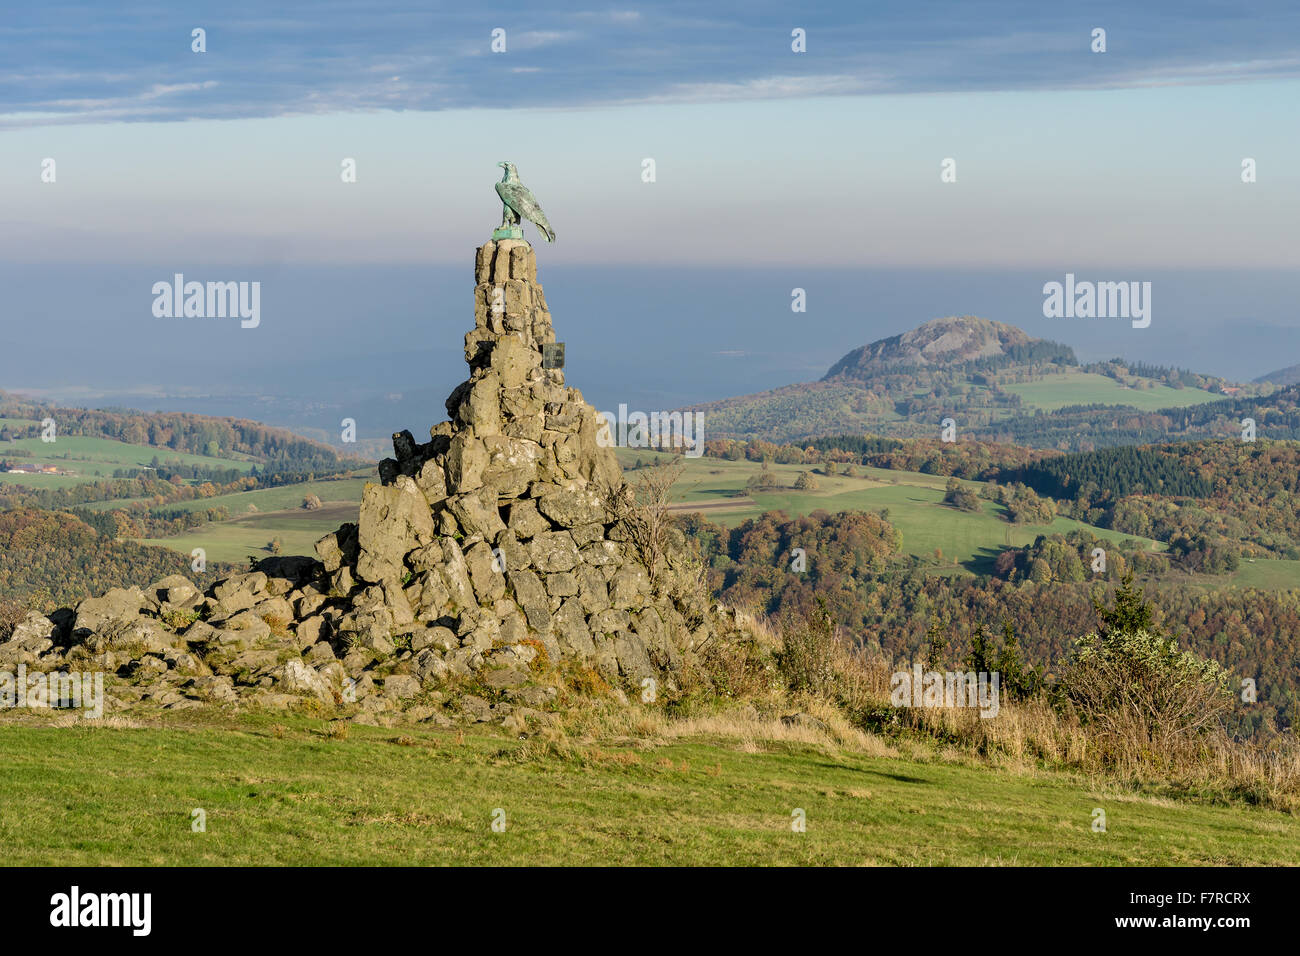 The Aviator monument in the Rhoen on the Wasserkuppe. - Stock Image